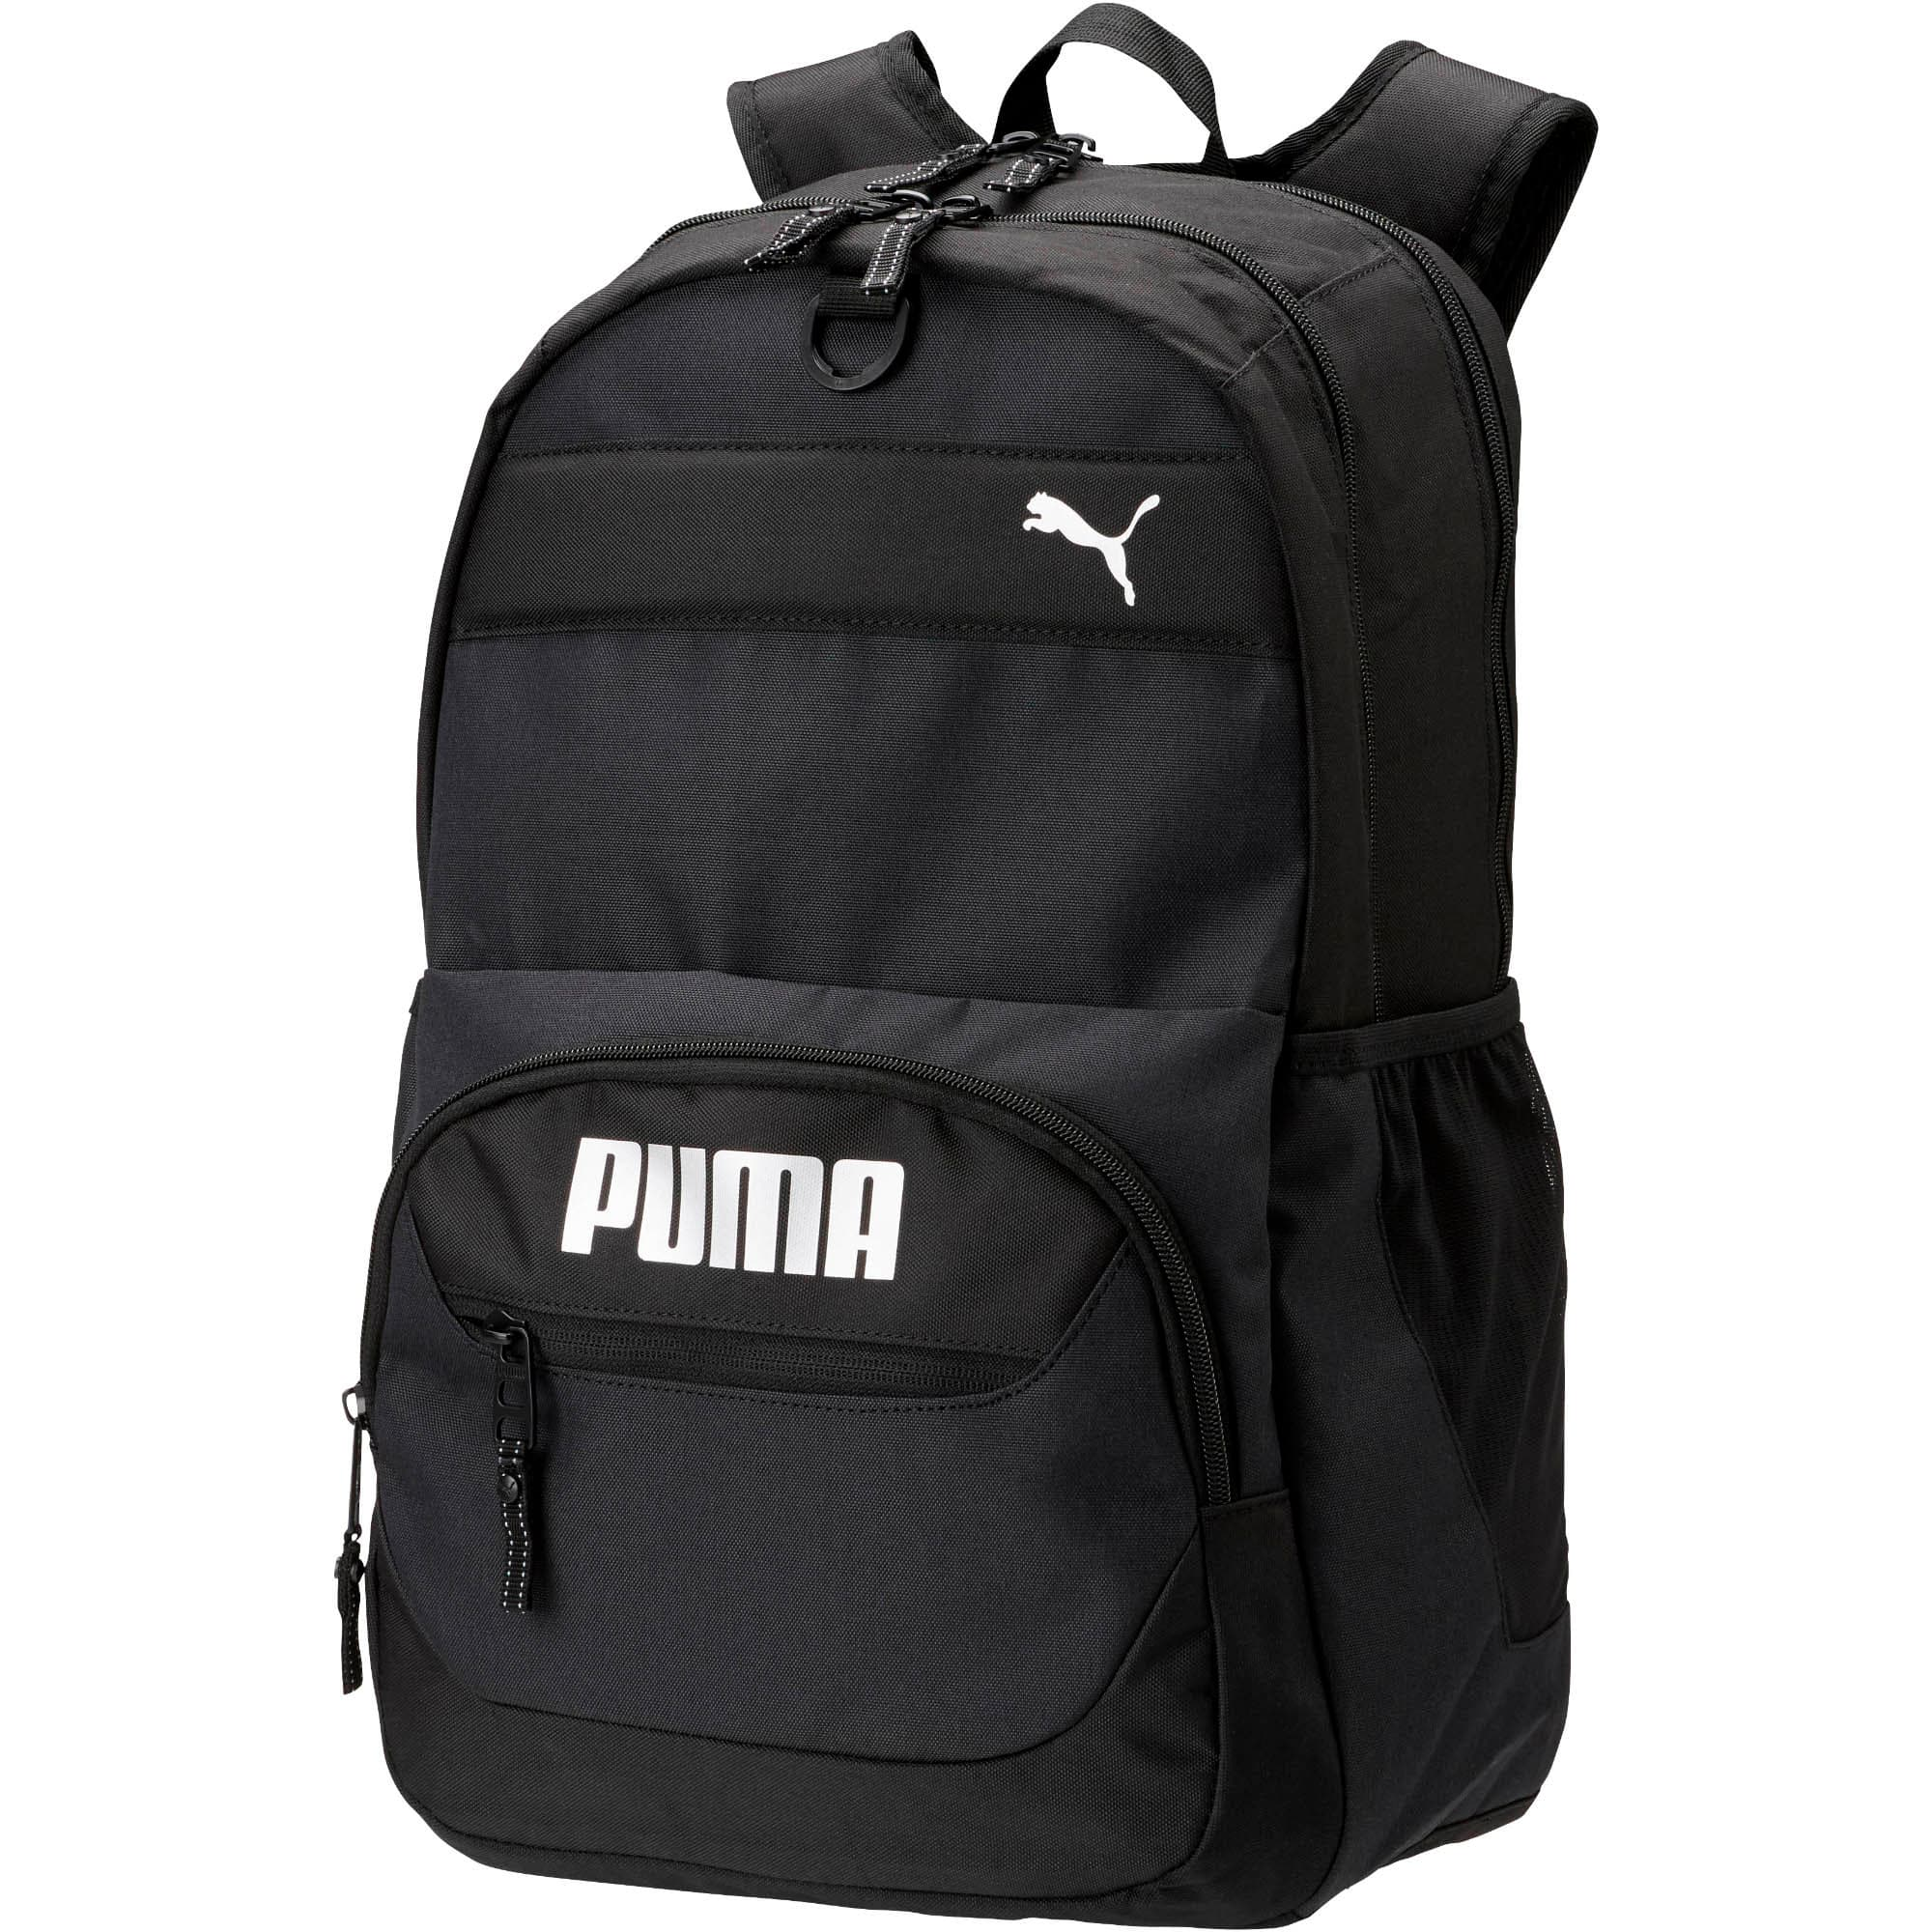 Thumbnail 1 of PUMA Everready Backpack, BLACK, medium